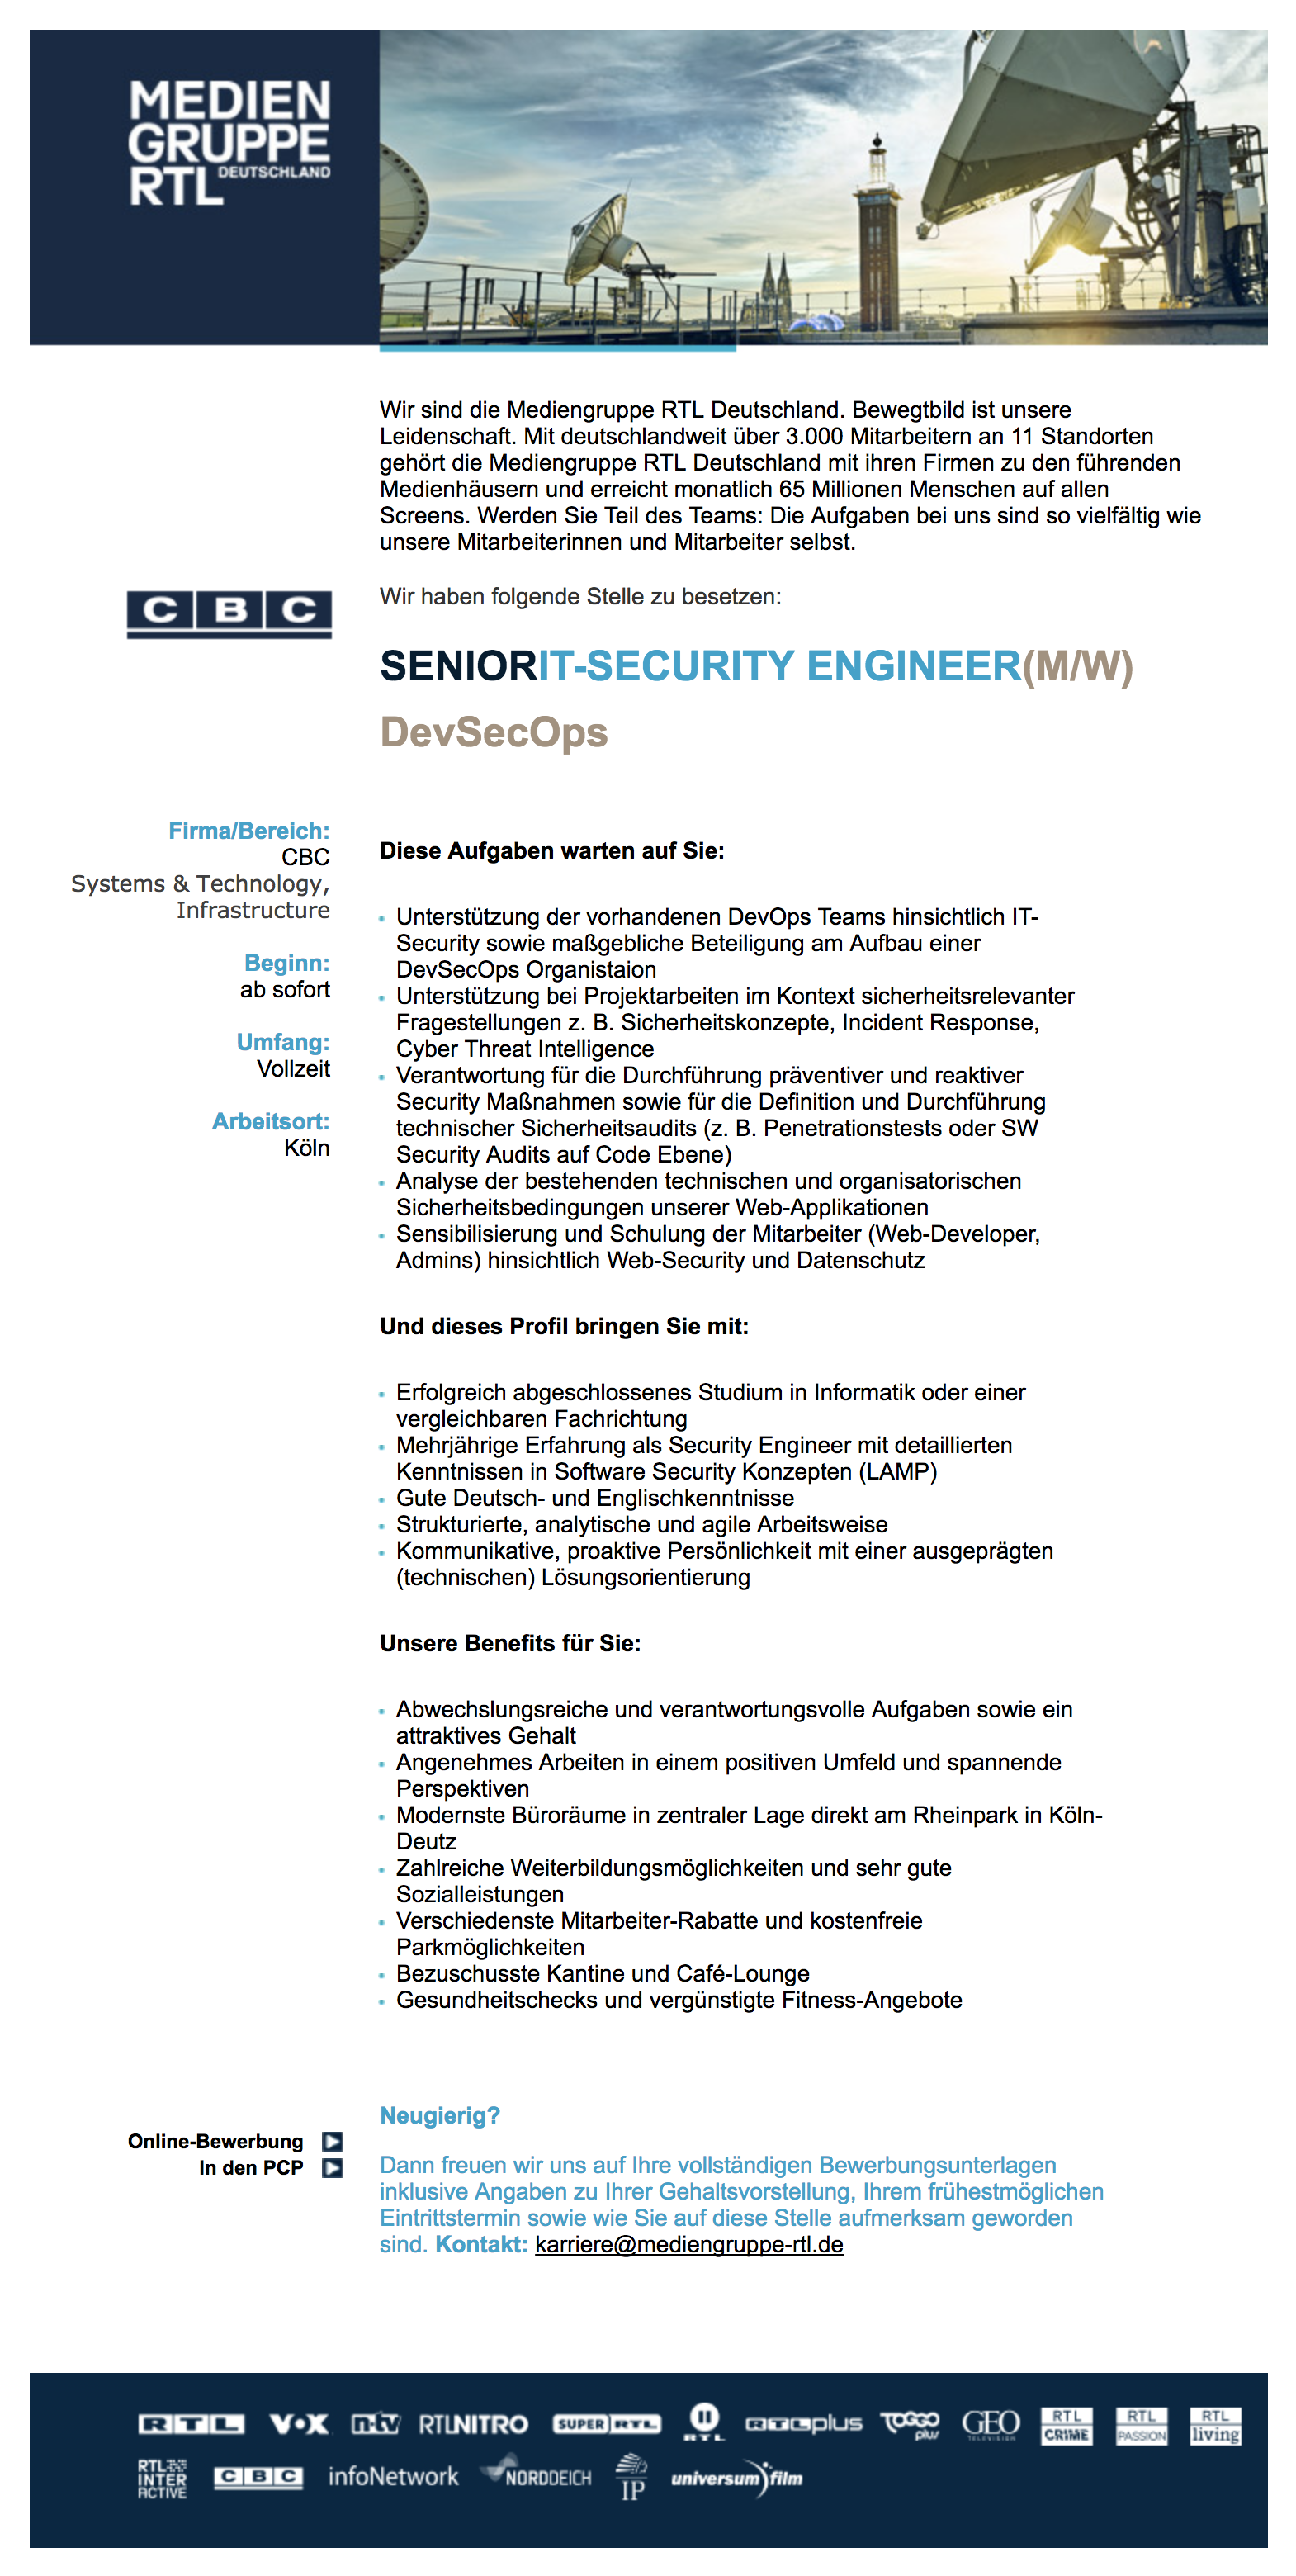 Senior IT-Security Engineer (m/w) - DevSecOps (CBC)